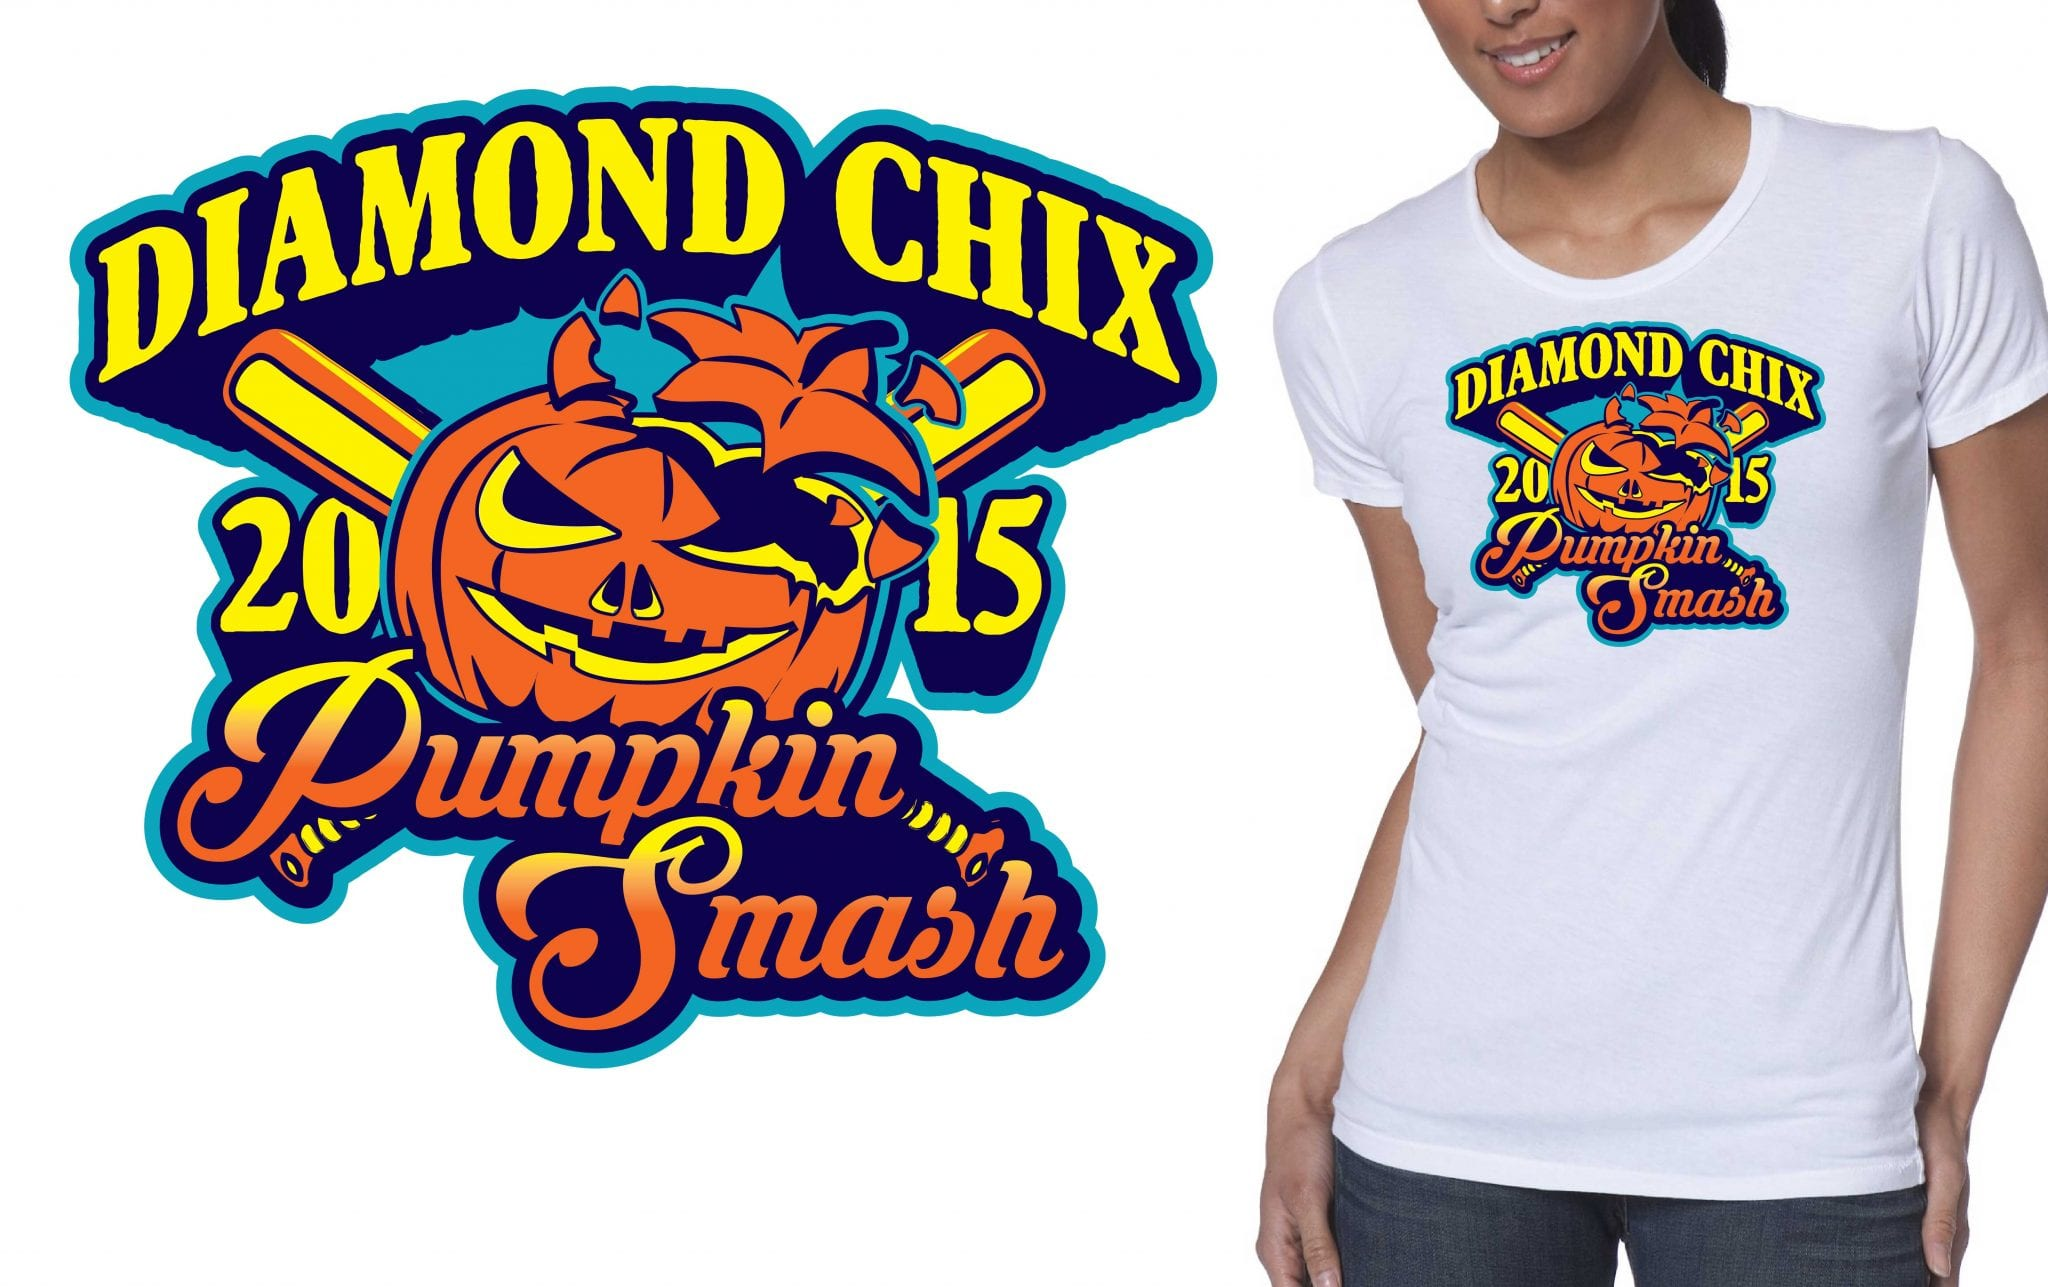 Diamond Chix Pumpkin Smash Crazy Tshirt Logo Design Urartstudio